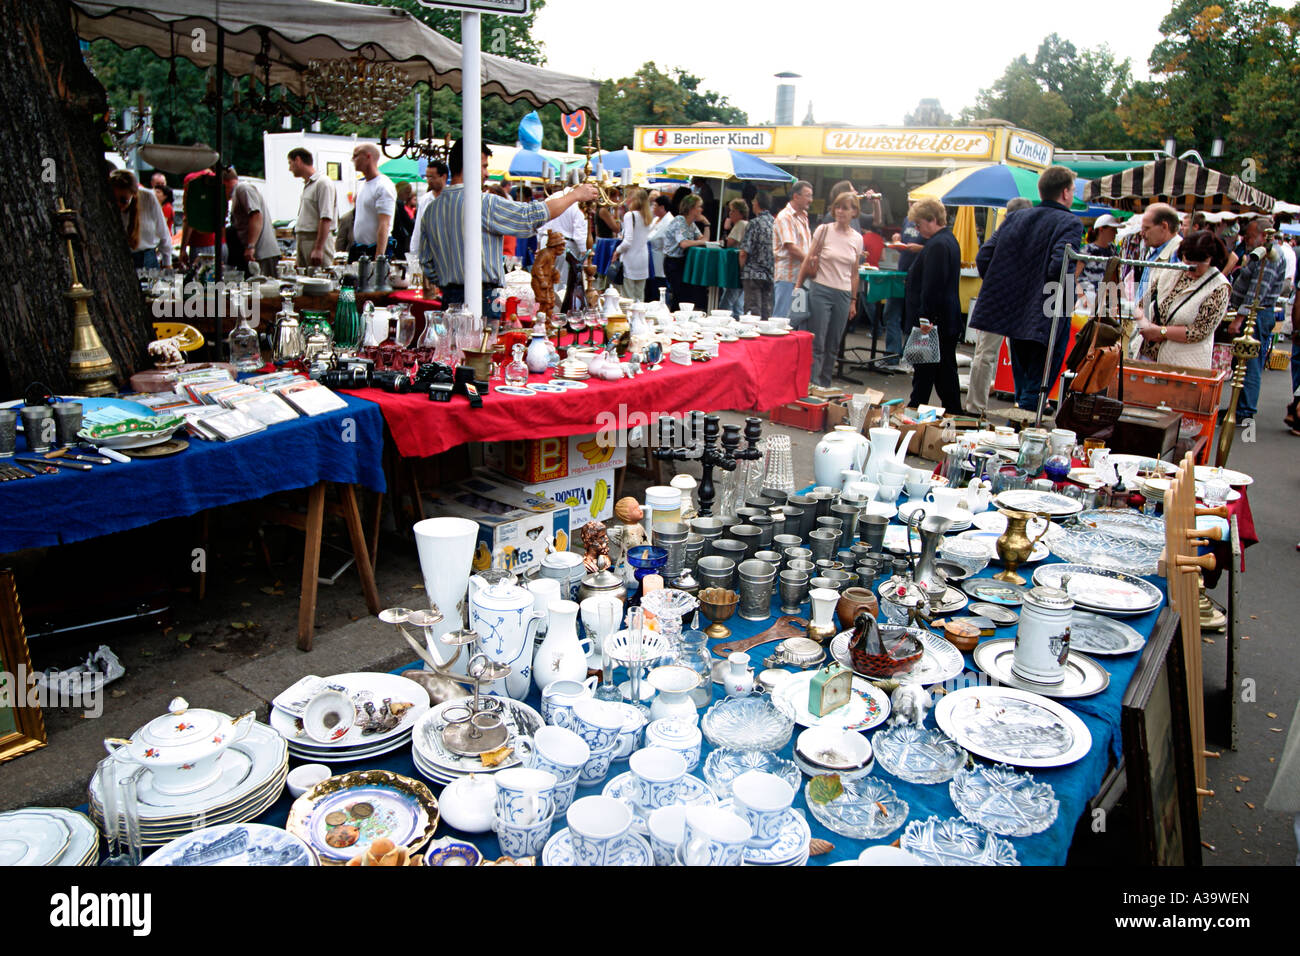 berlin tiergarten 17 juni flohmarkt flohmarkt stockfoto bild 10718012 alamy. Black Bedroom Furniture Sets. Home Design Ideas